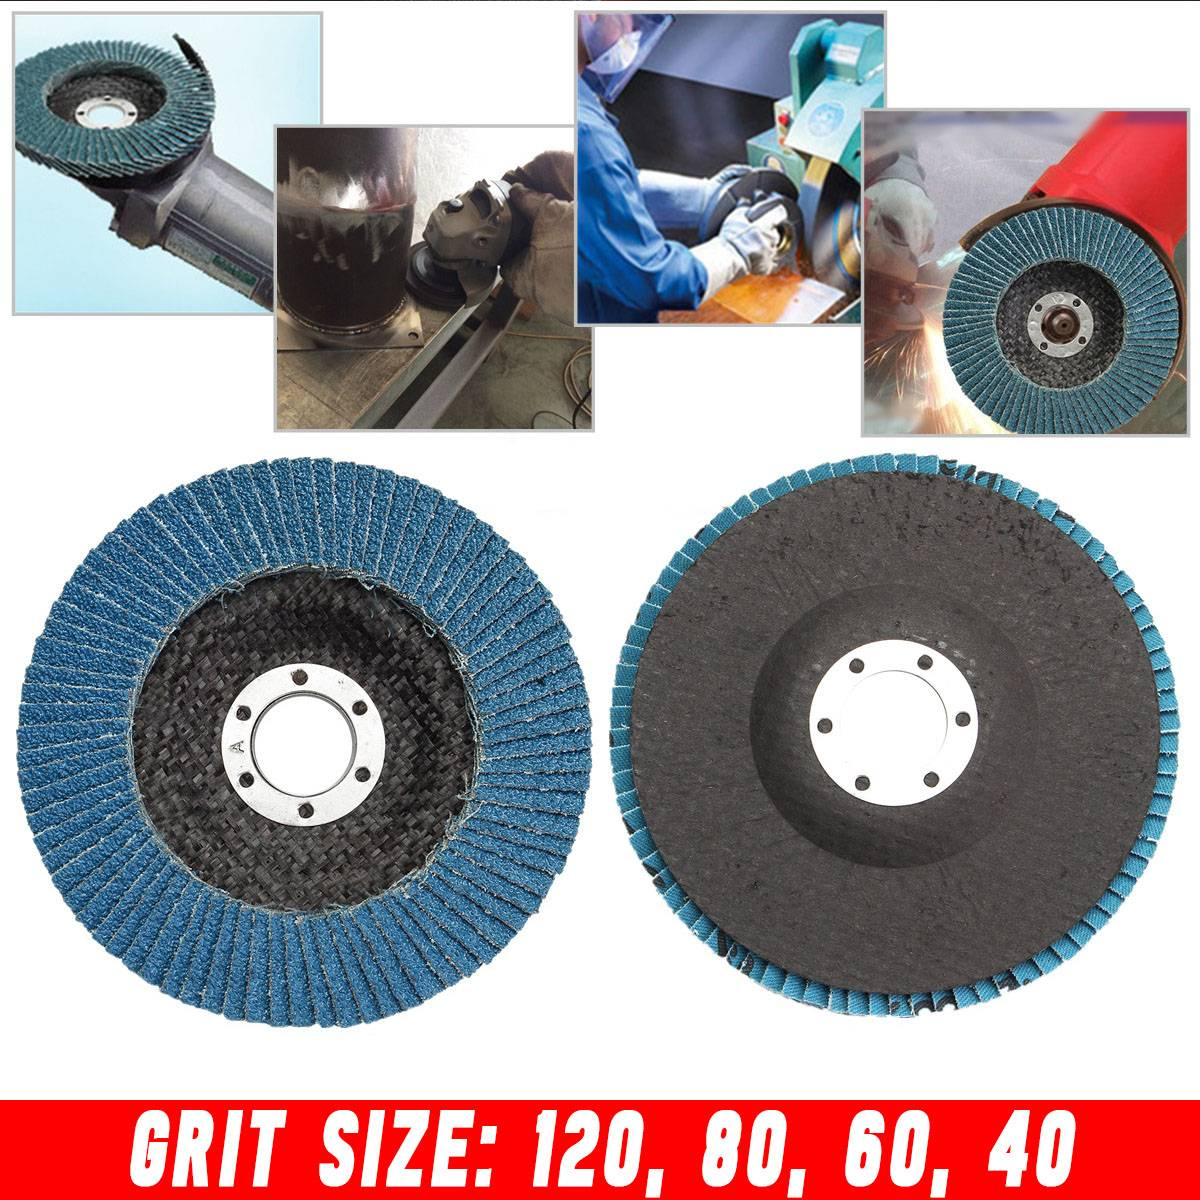 40/60/80/120 Grit Grinding Wheels Flap Discs 100mm 4inch Angle Grinder Sanding Tool 15000 Rpm Abrasive Tools Silicon Carbide